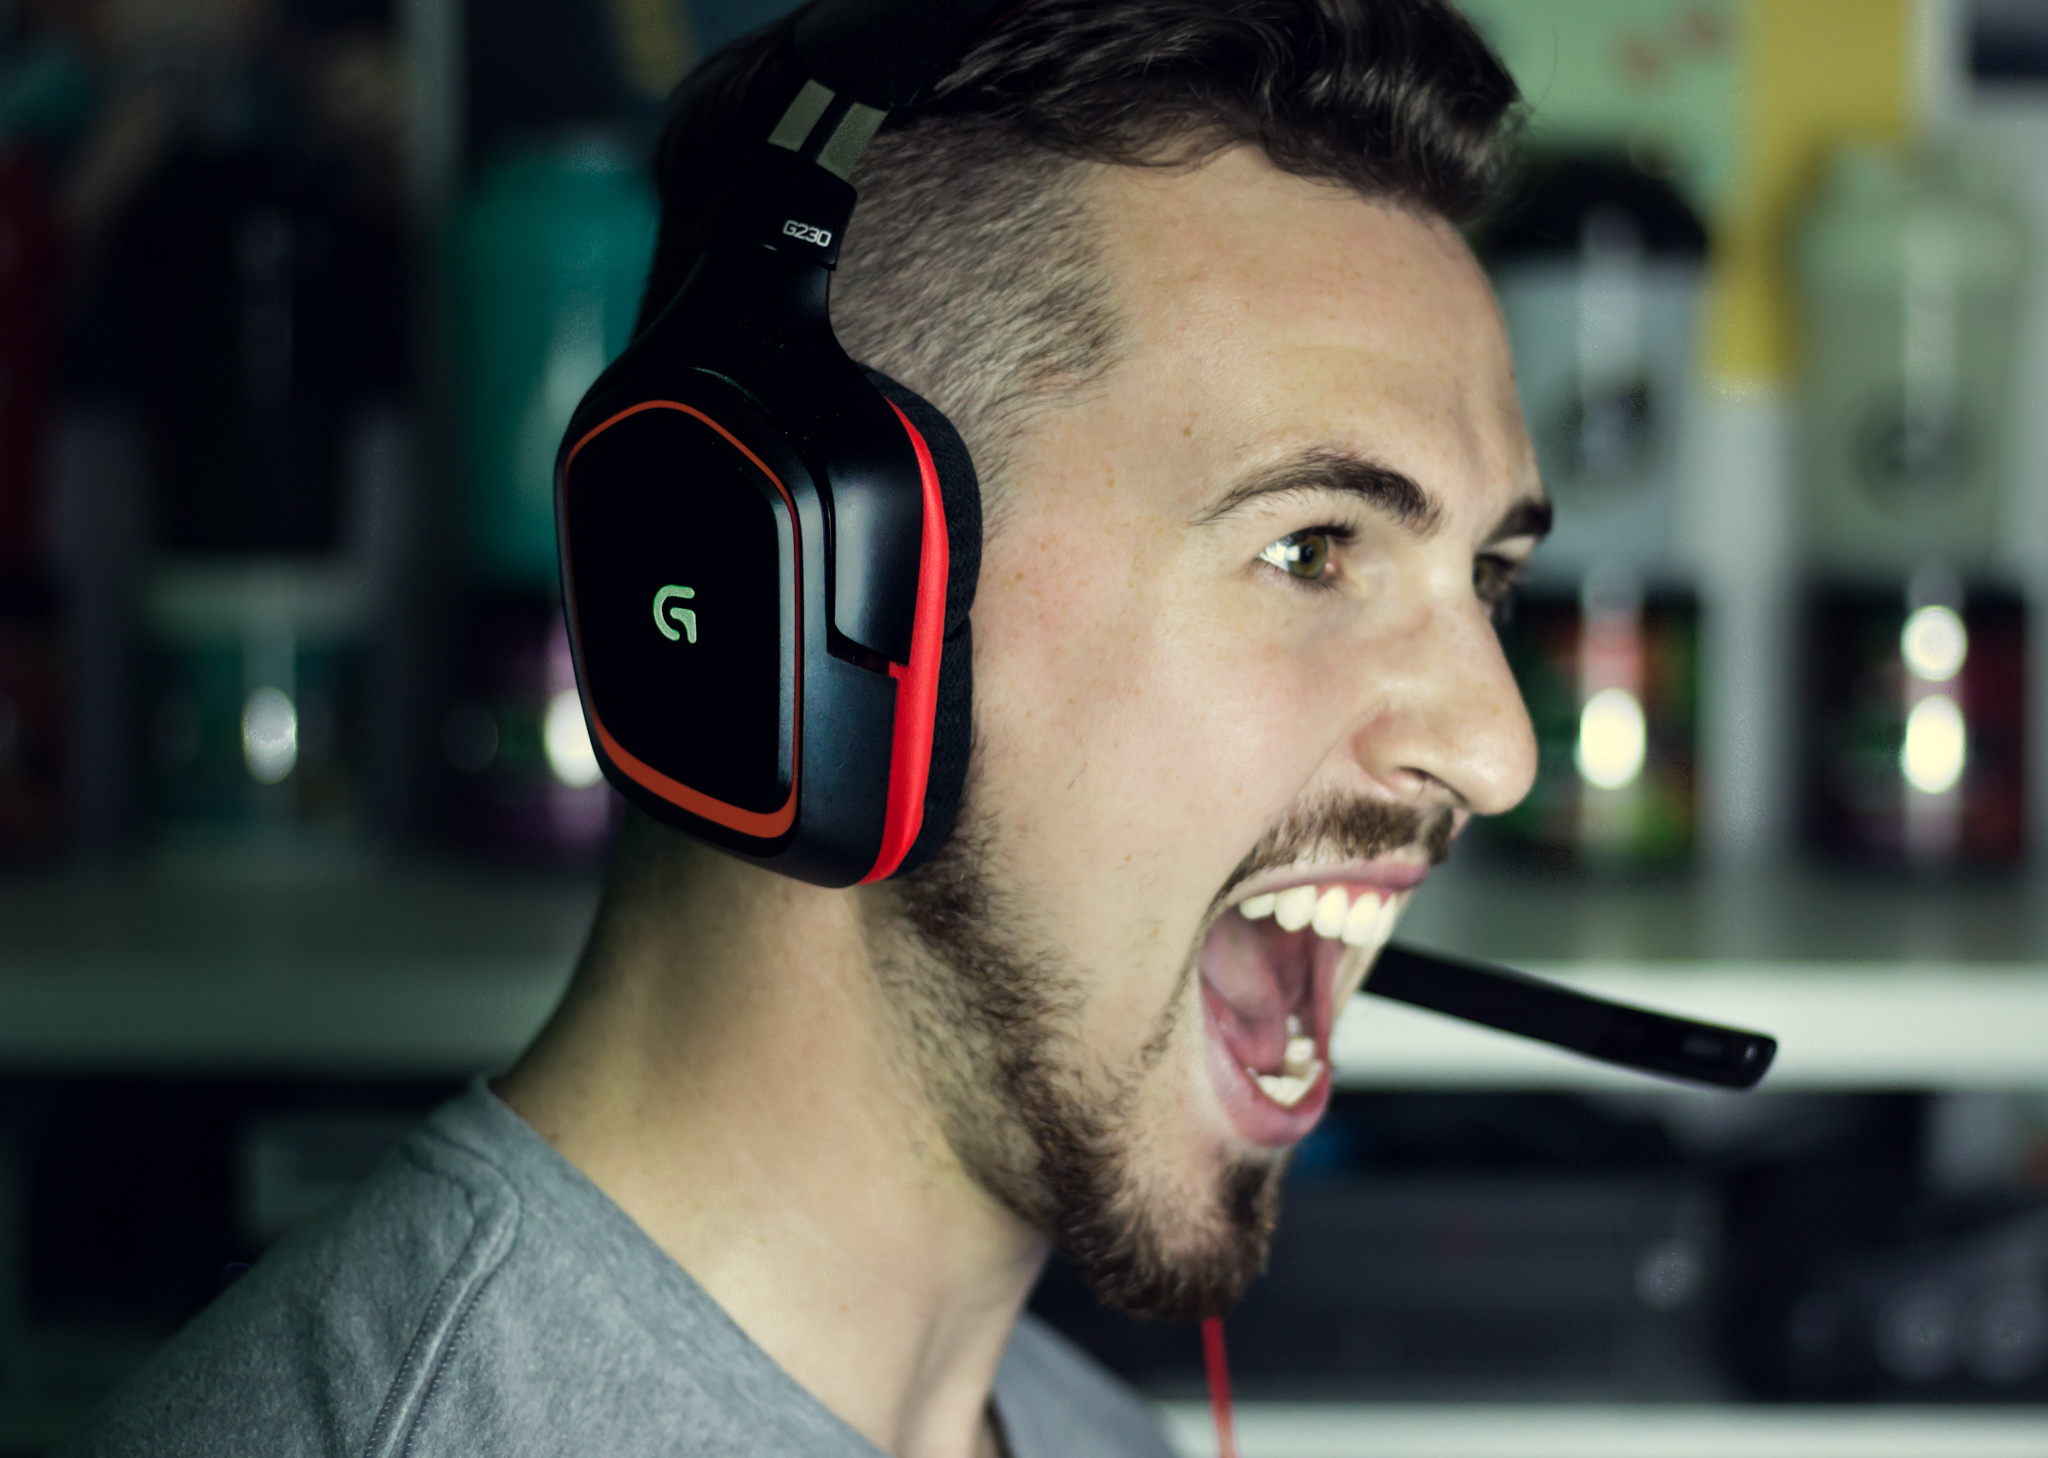 Headset Scream 1.jpg